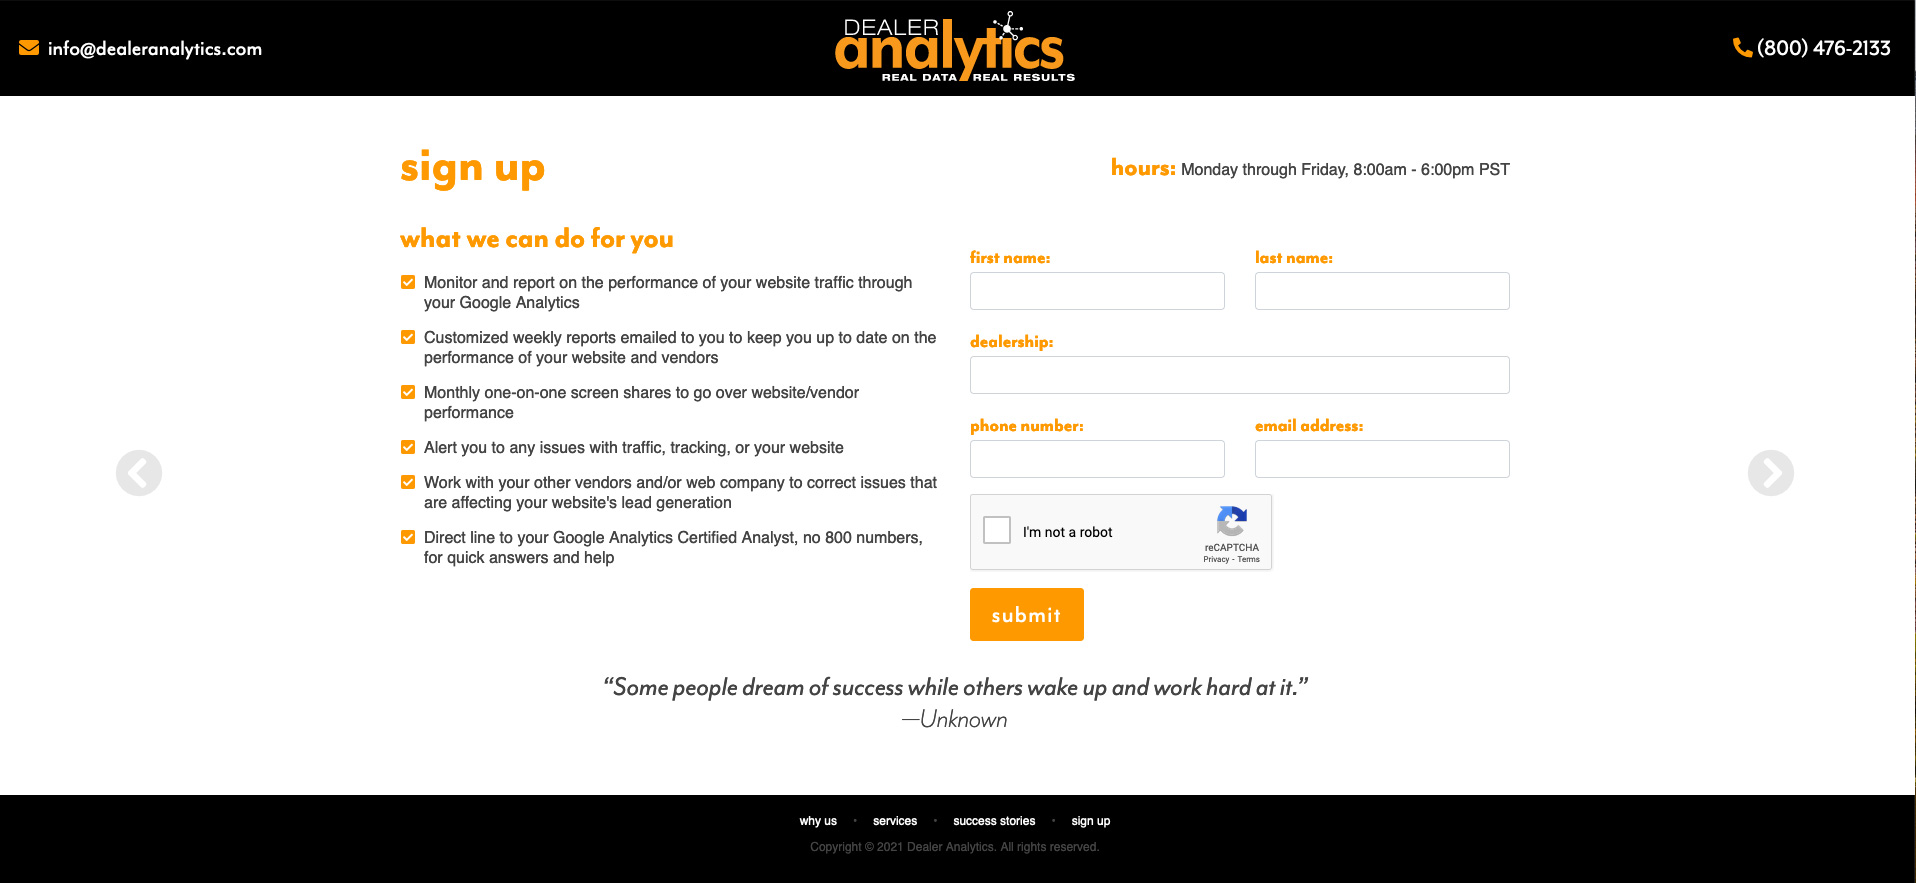 Contact Us Page for Dealer Analytics